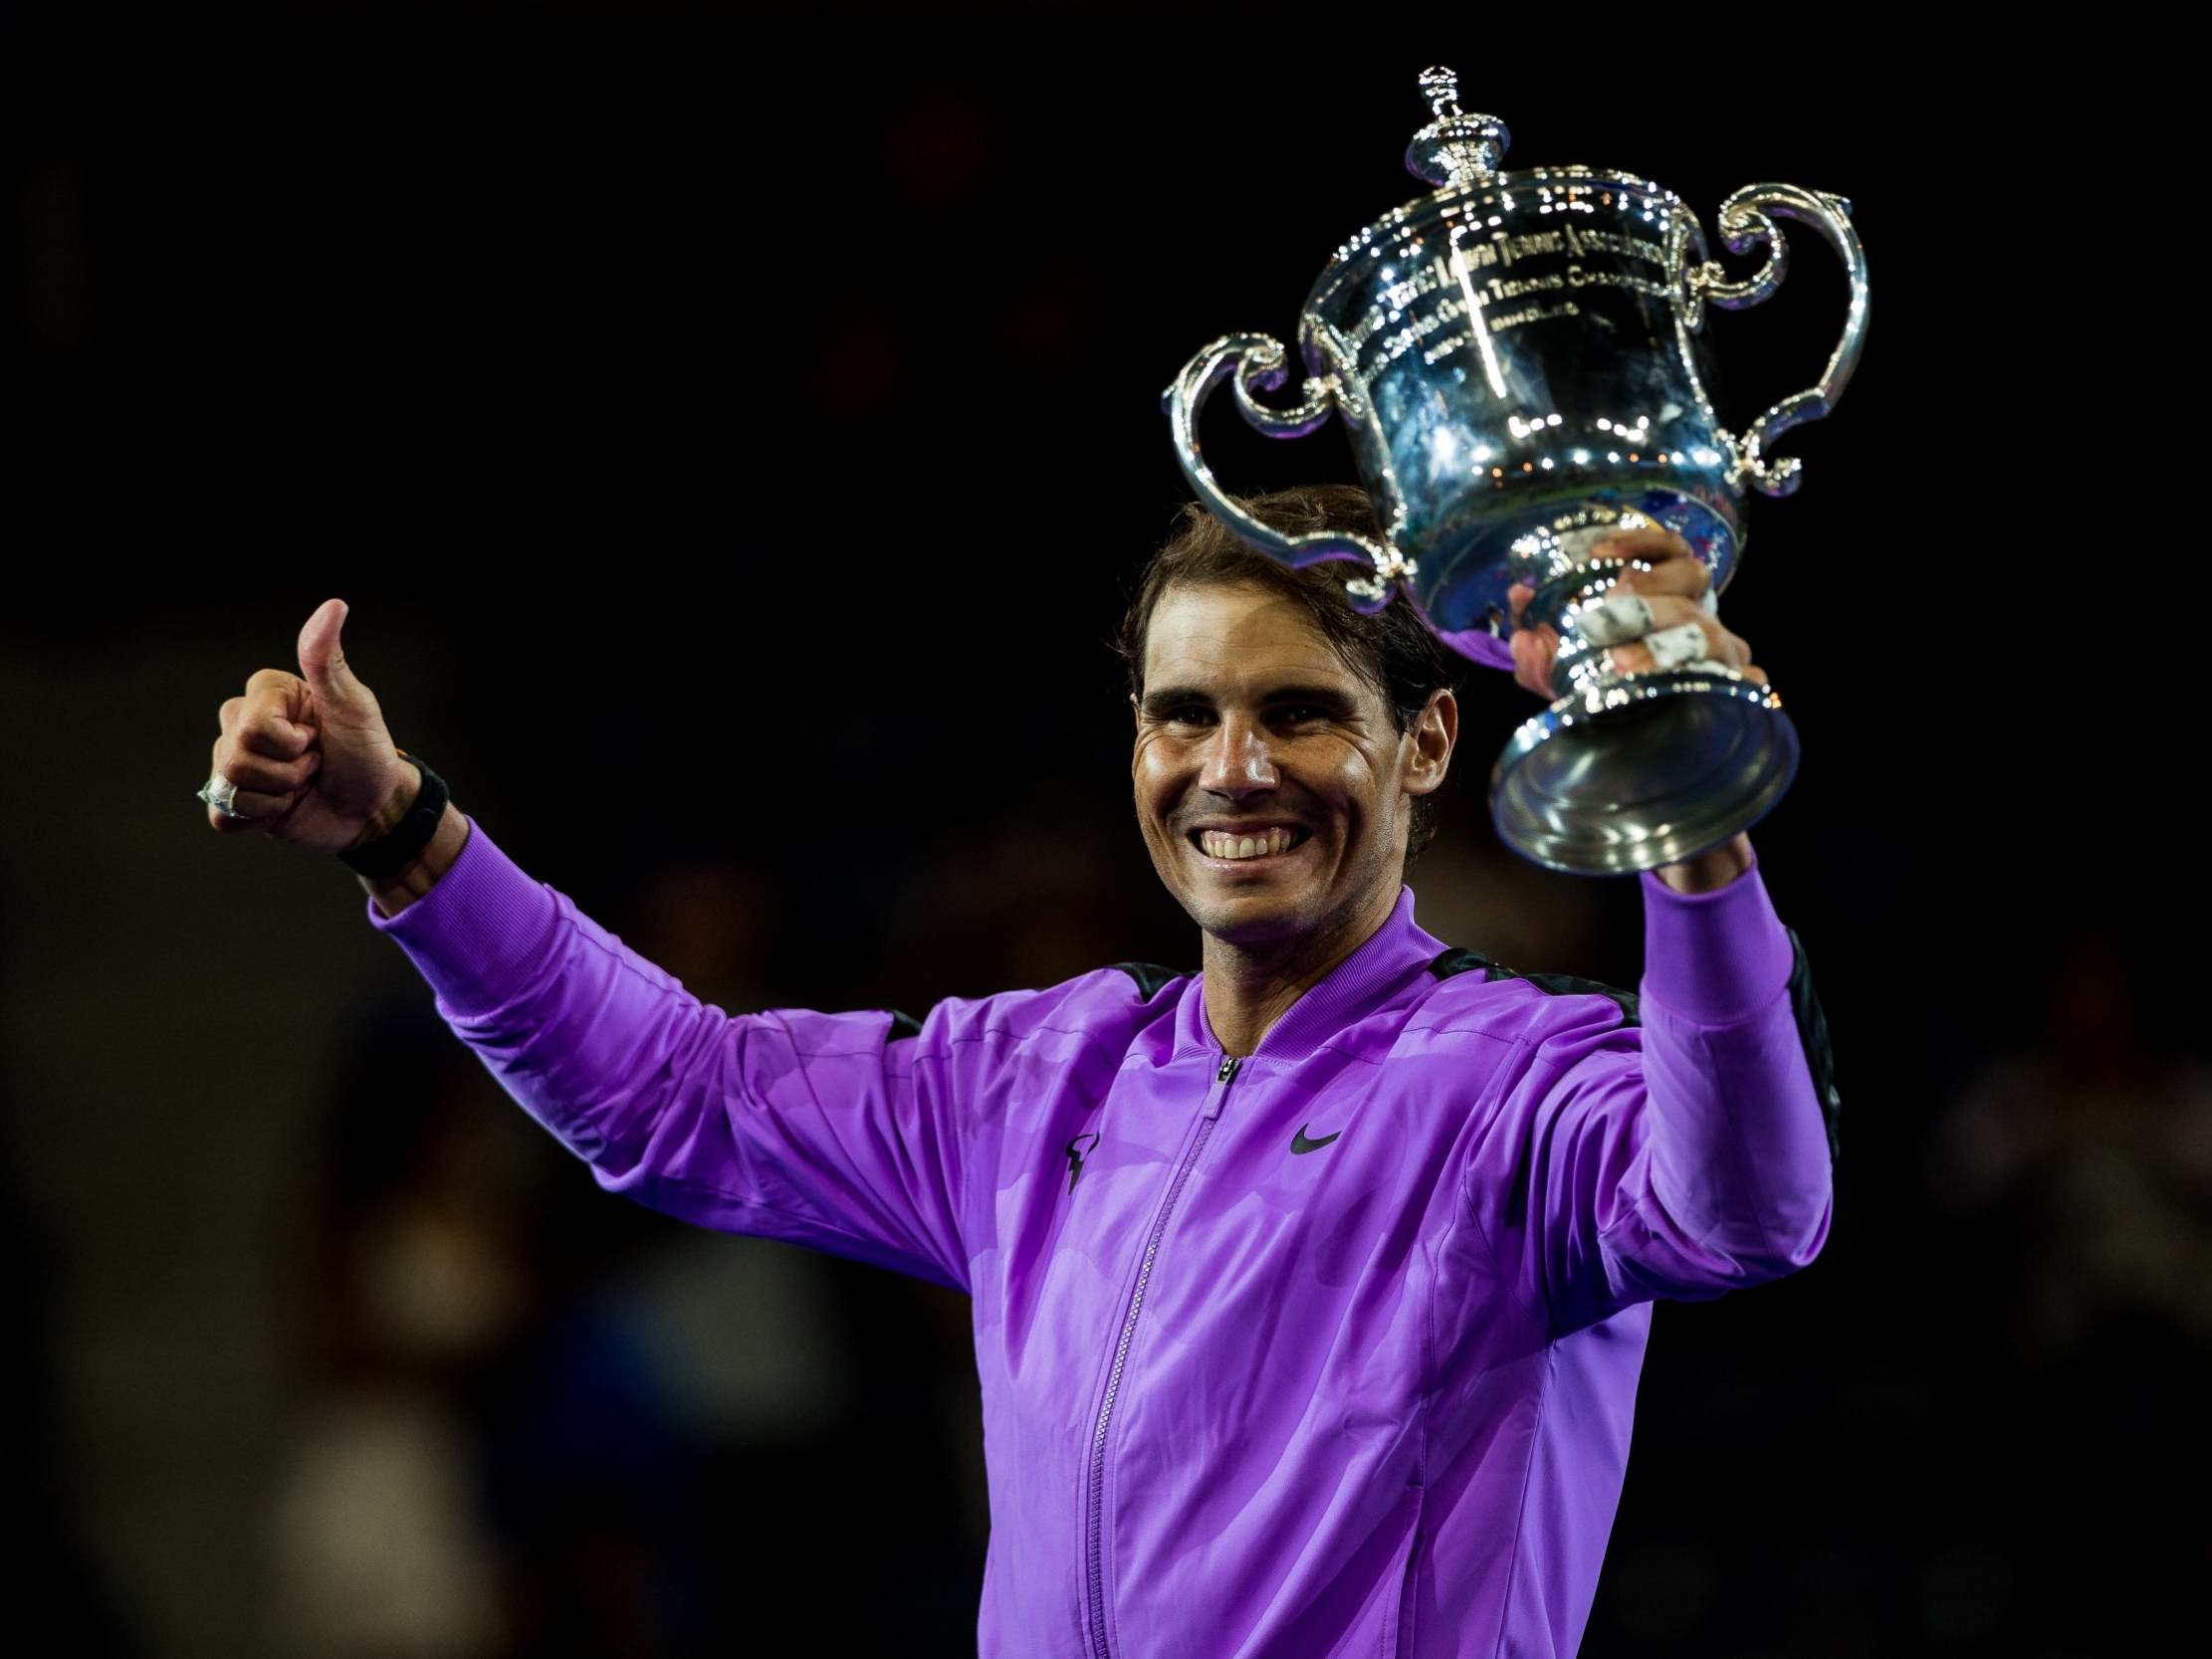 Us Open 2019 Rafael Nadal Defeats Daniil Medvedev In Five Set Thriller To Win 19th Grand Slam The Independent The Independent